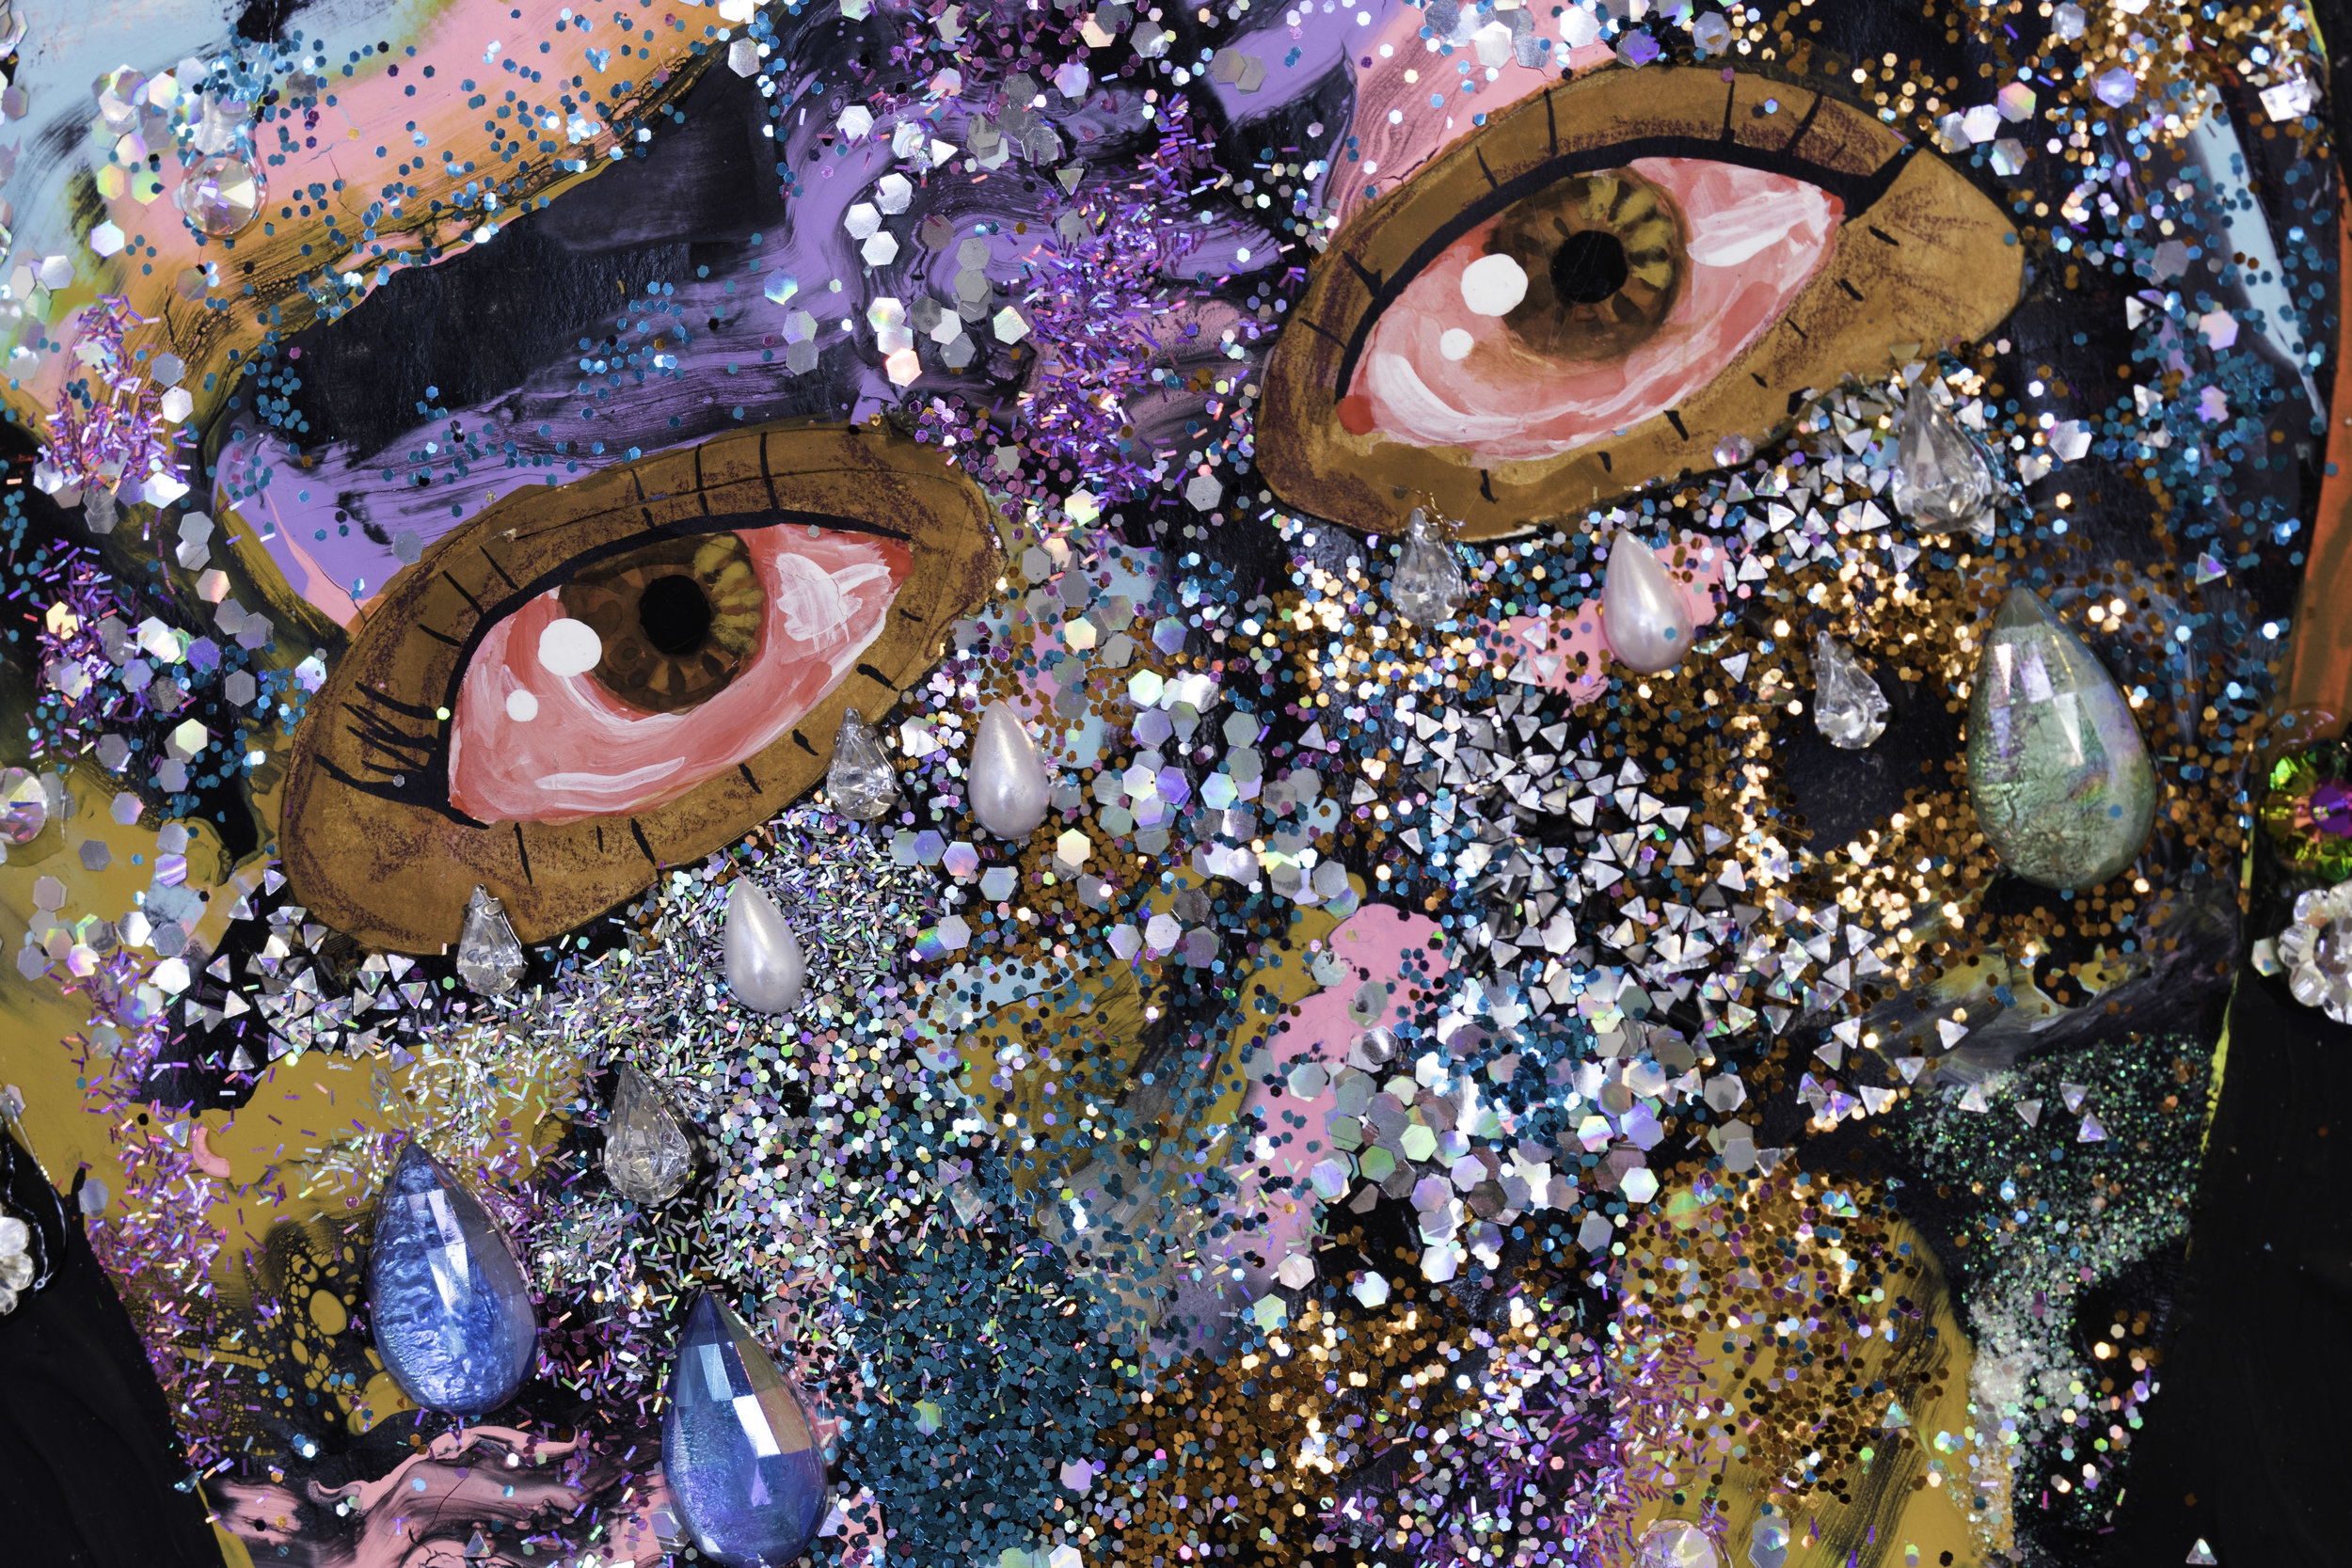 Jasmin Zelaya, Olympia (deatail), 2019, Gouache, acrylic, spray paint, ink, colored pencil, rhinestones, glitter, and gold leaf on paper, 7' x 5'